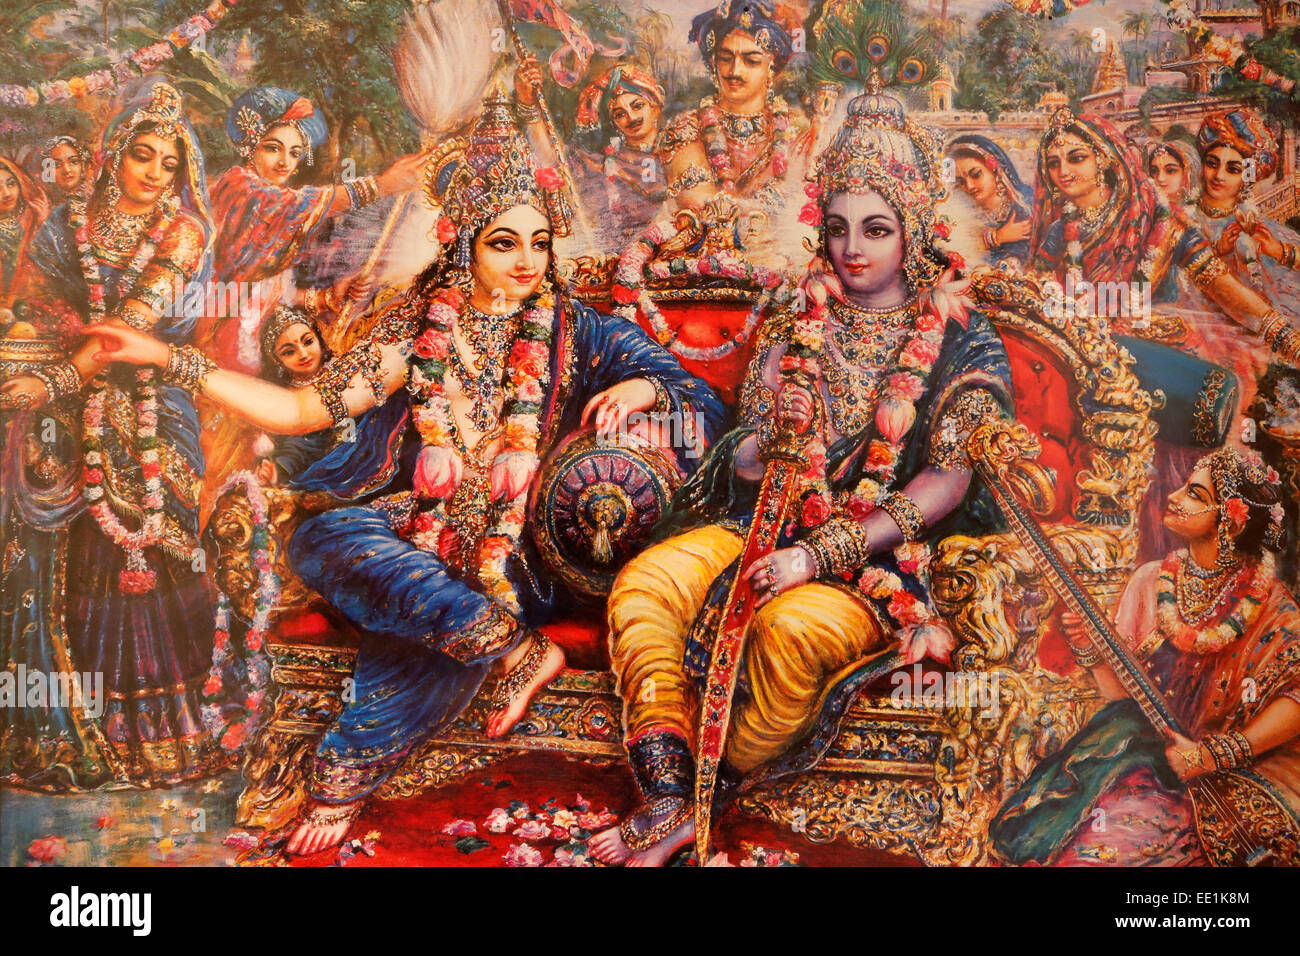 Picture of Radha and Krishna displayed in an ISKCON temple, Sarcelles, Seine St. Denis, France, Europe - Stock Image